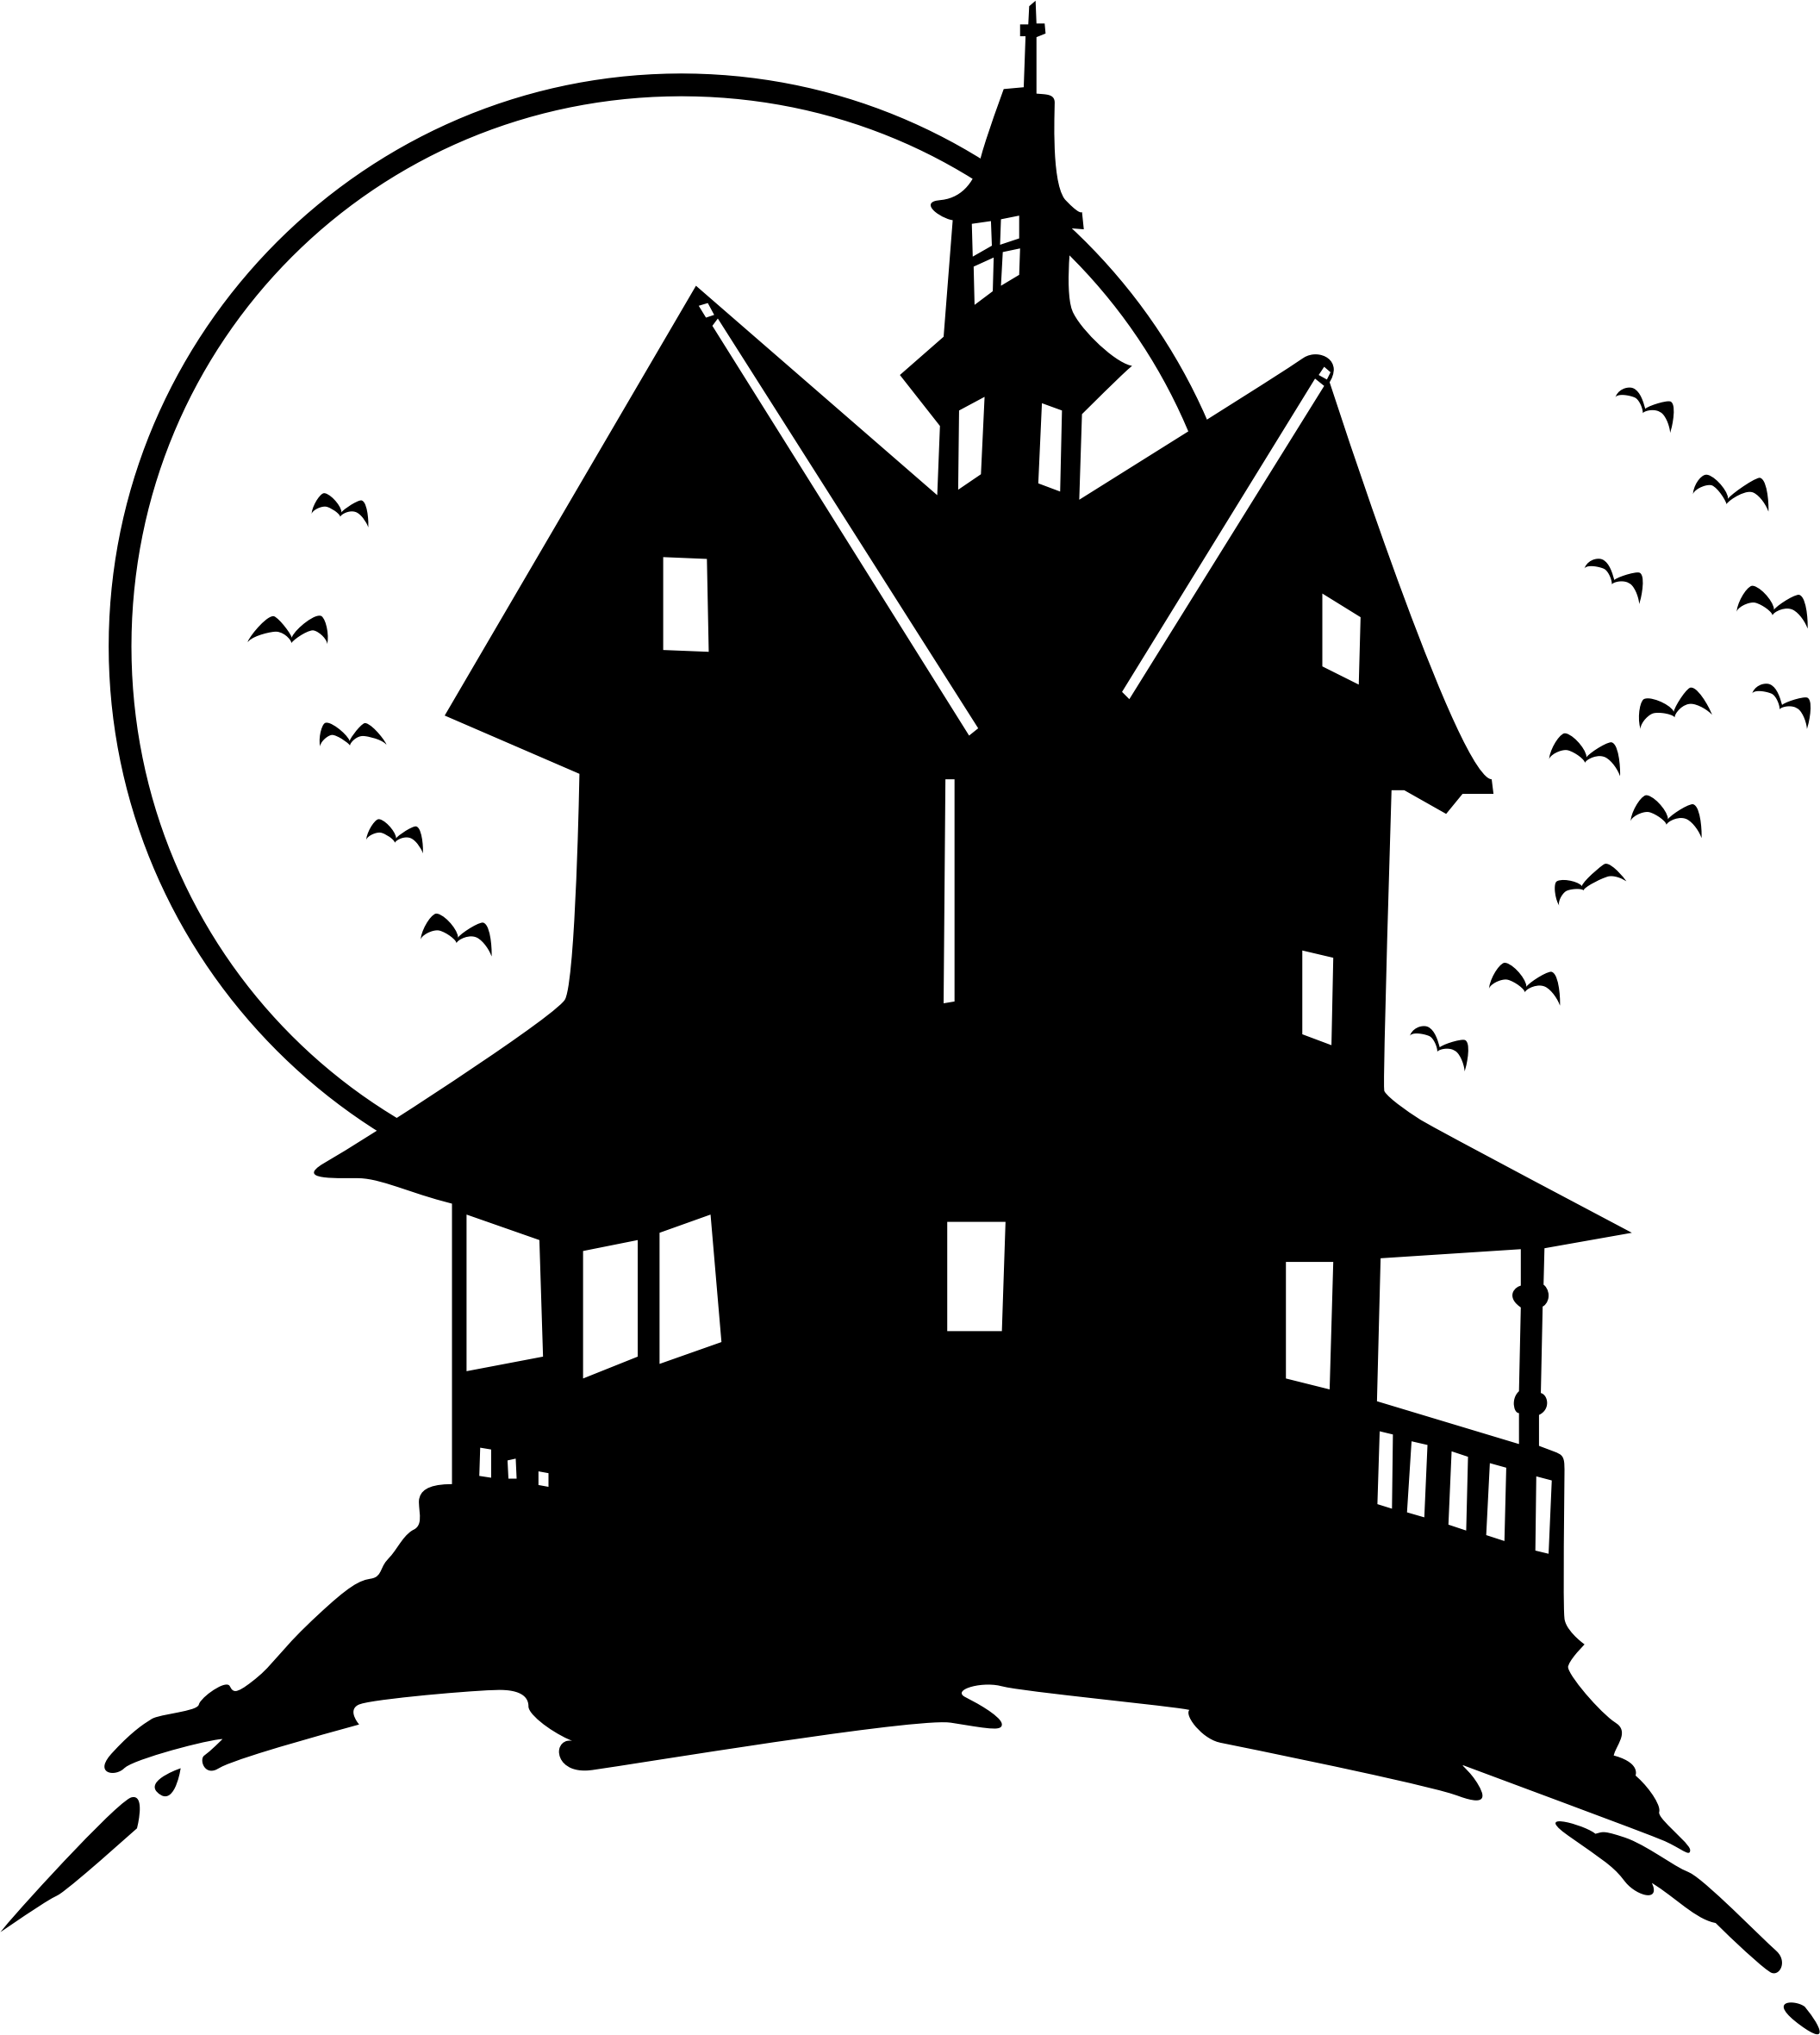 Haunted house png. On the hill icons